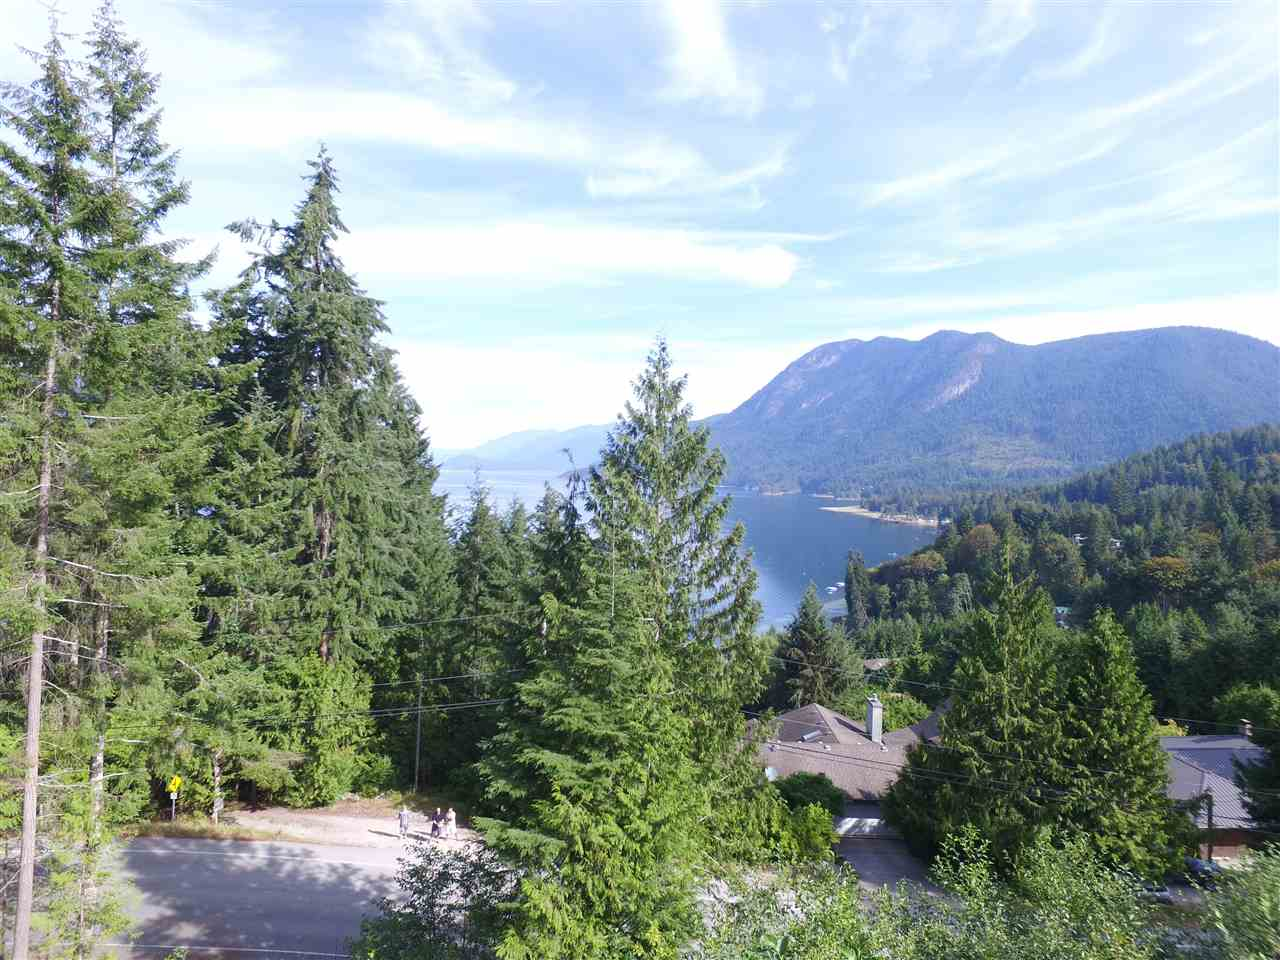 Main Photo: Lot 3 SANDY HOOK Road in Sechelt: Sechelt District Home for sale (Sunshine Coast)  : MLS® # R2100188